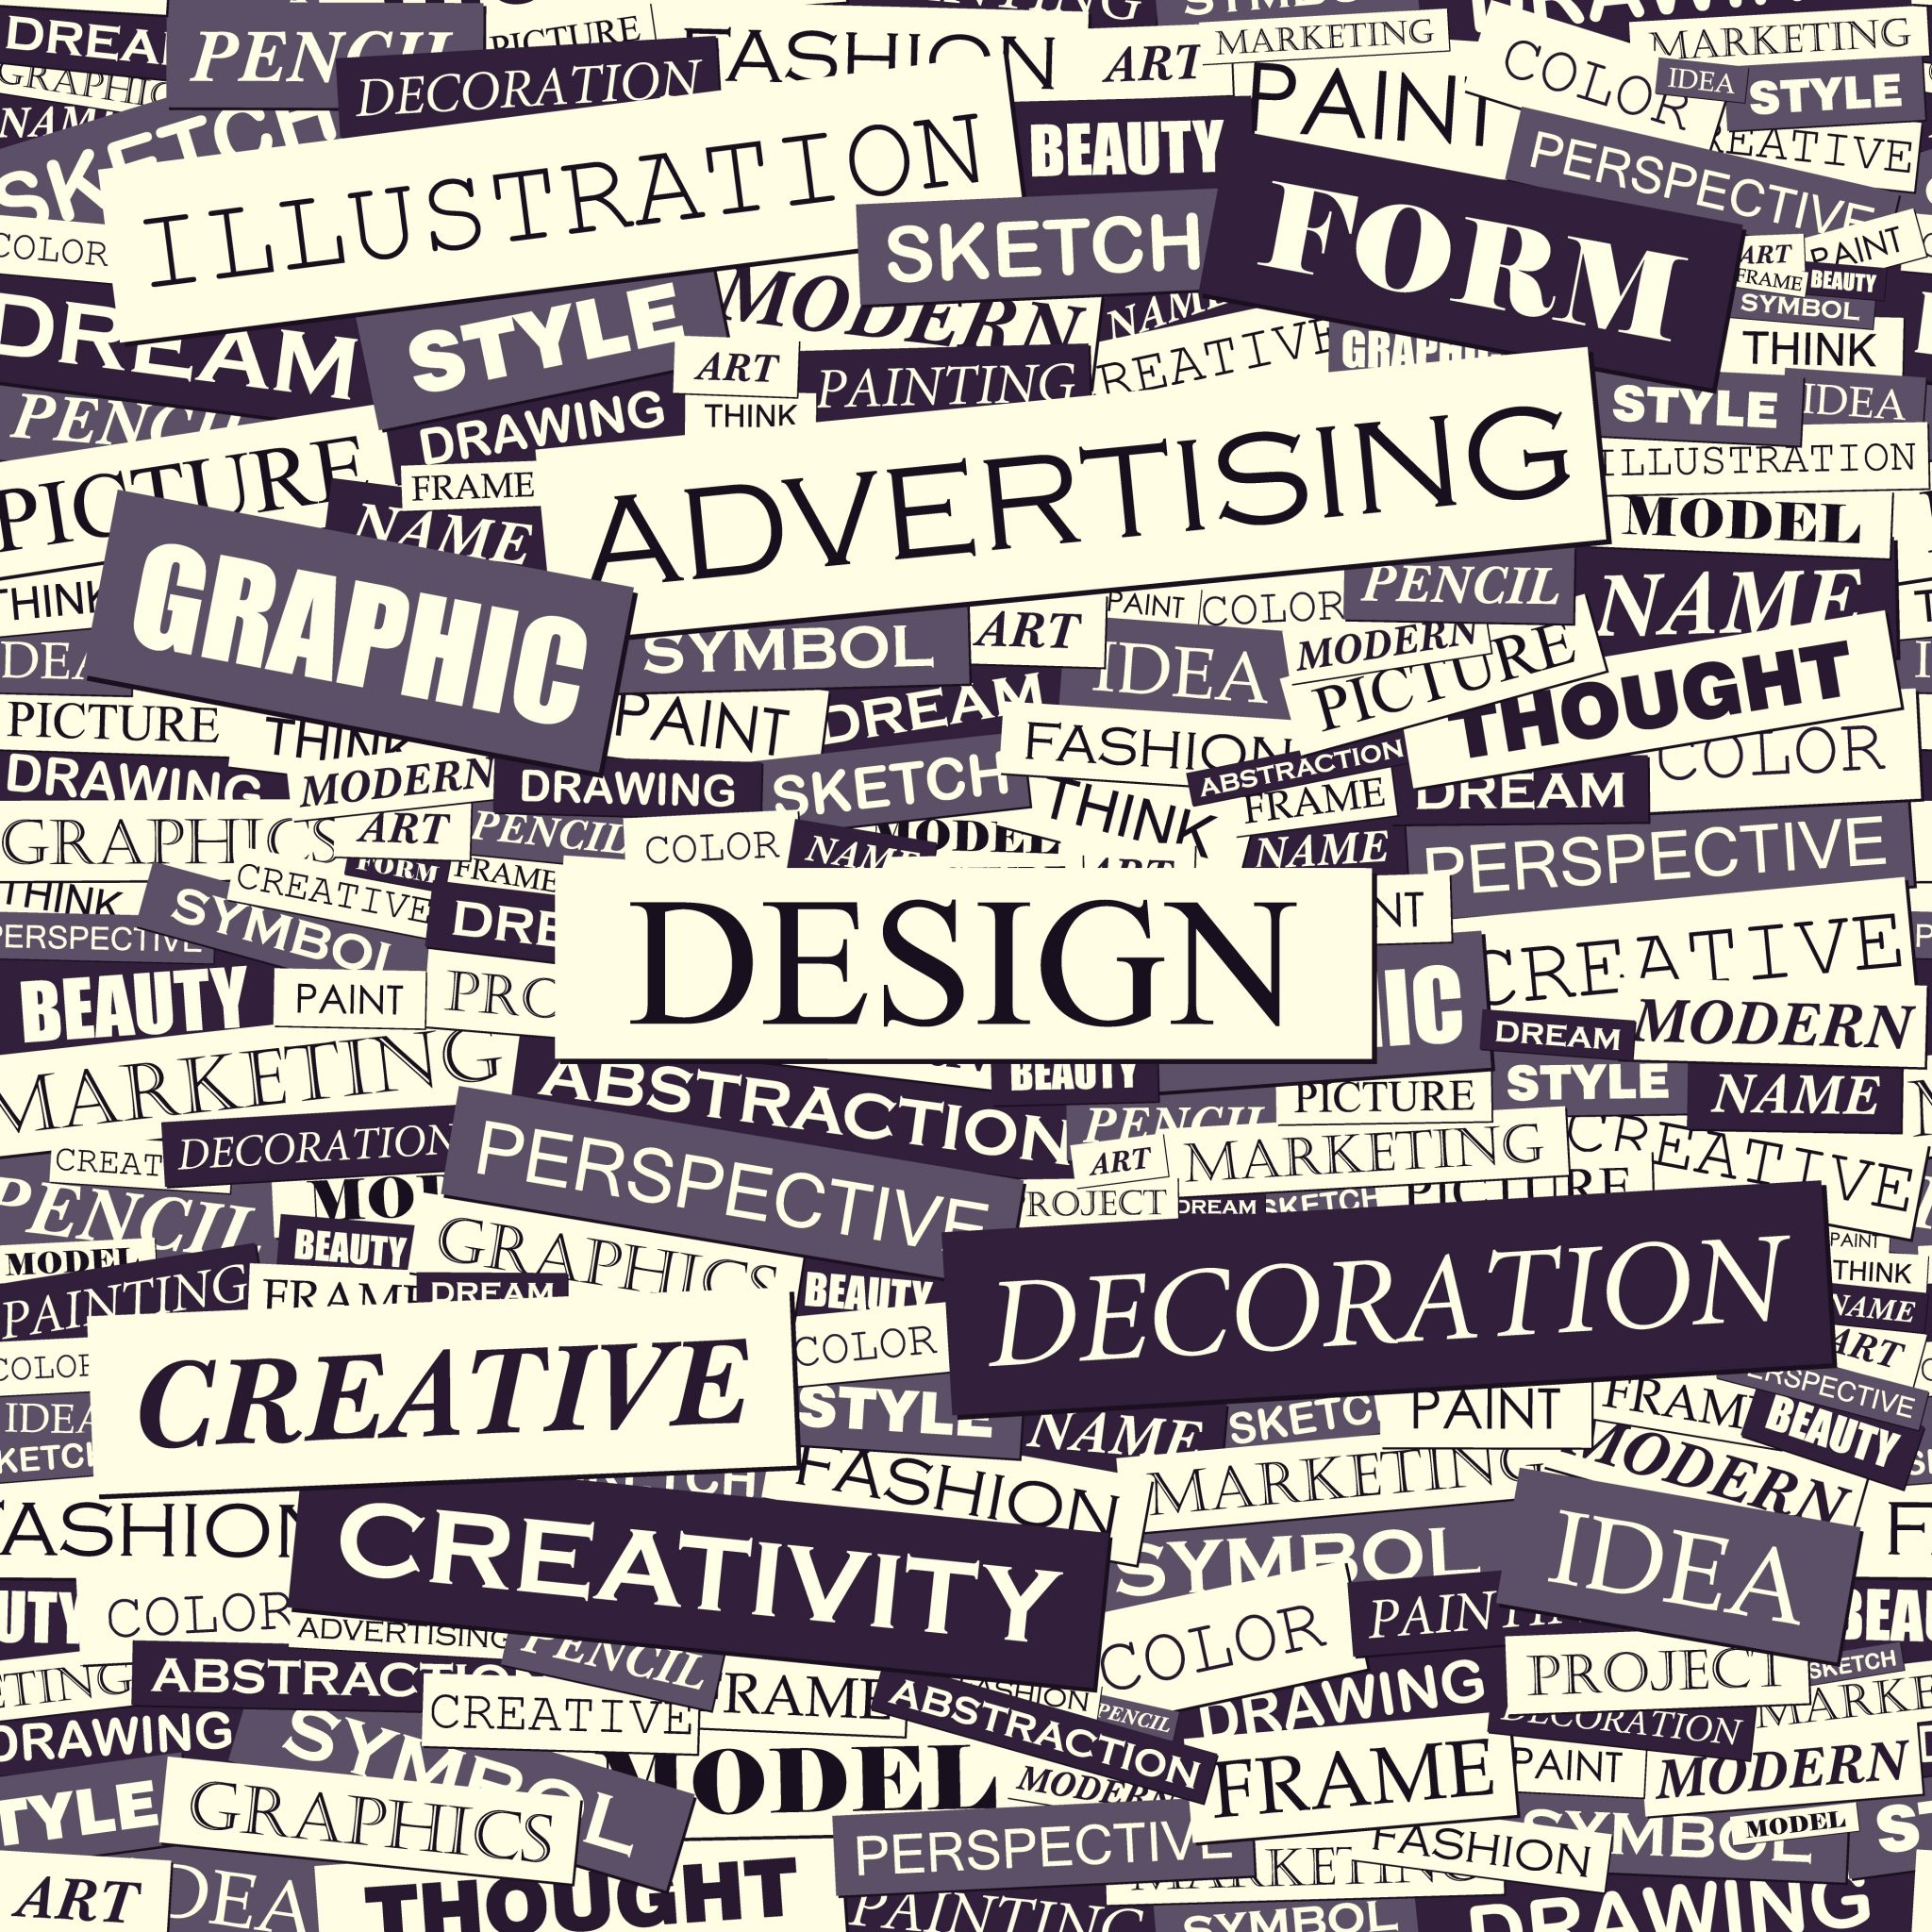 Design Terms - Eyler Creative